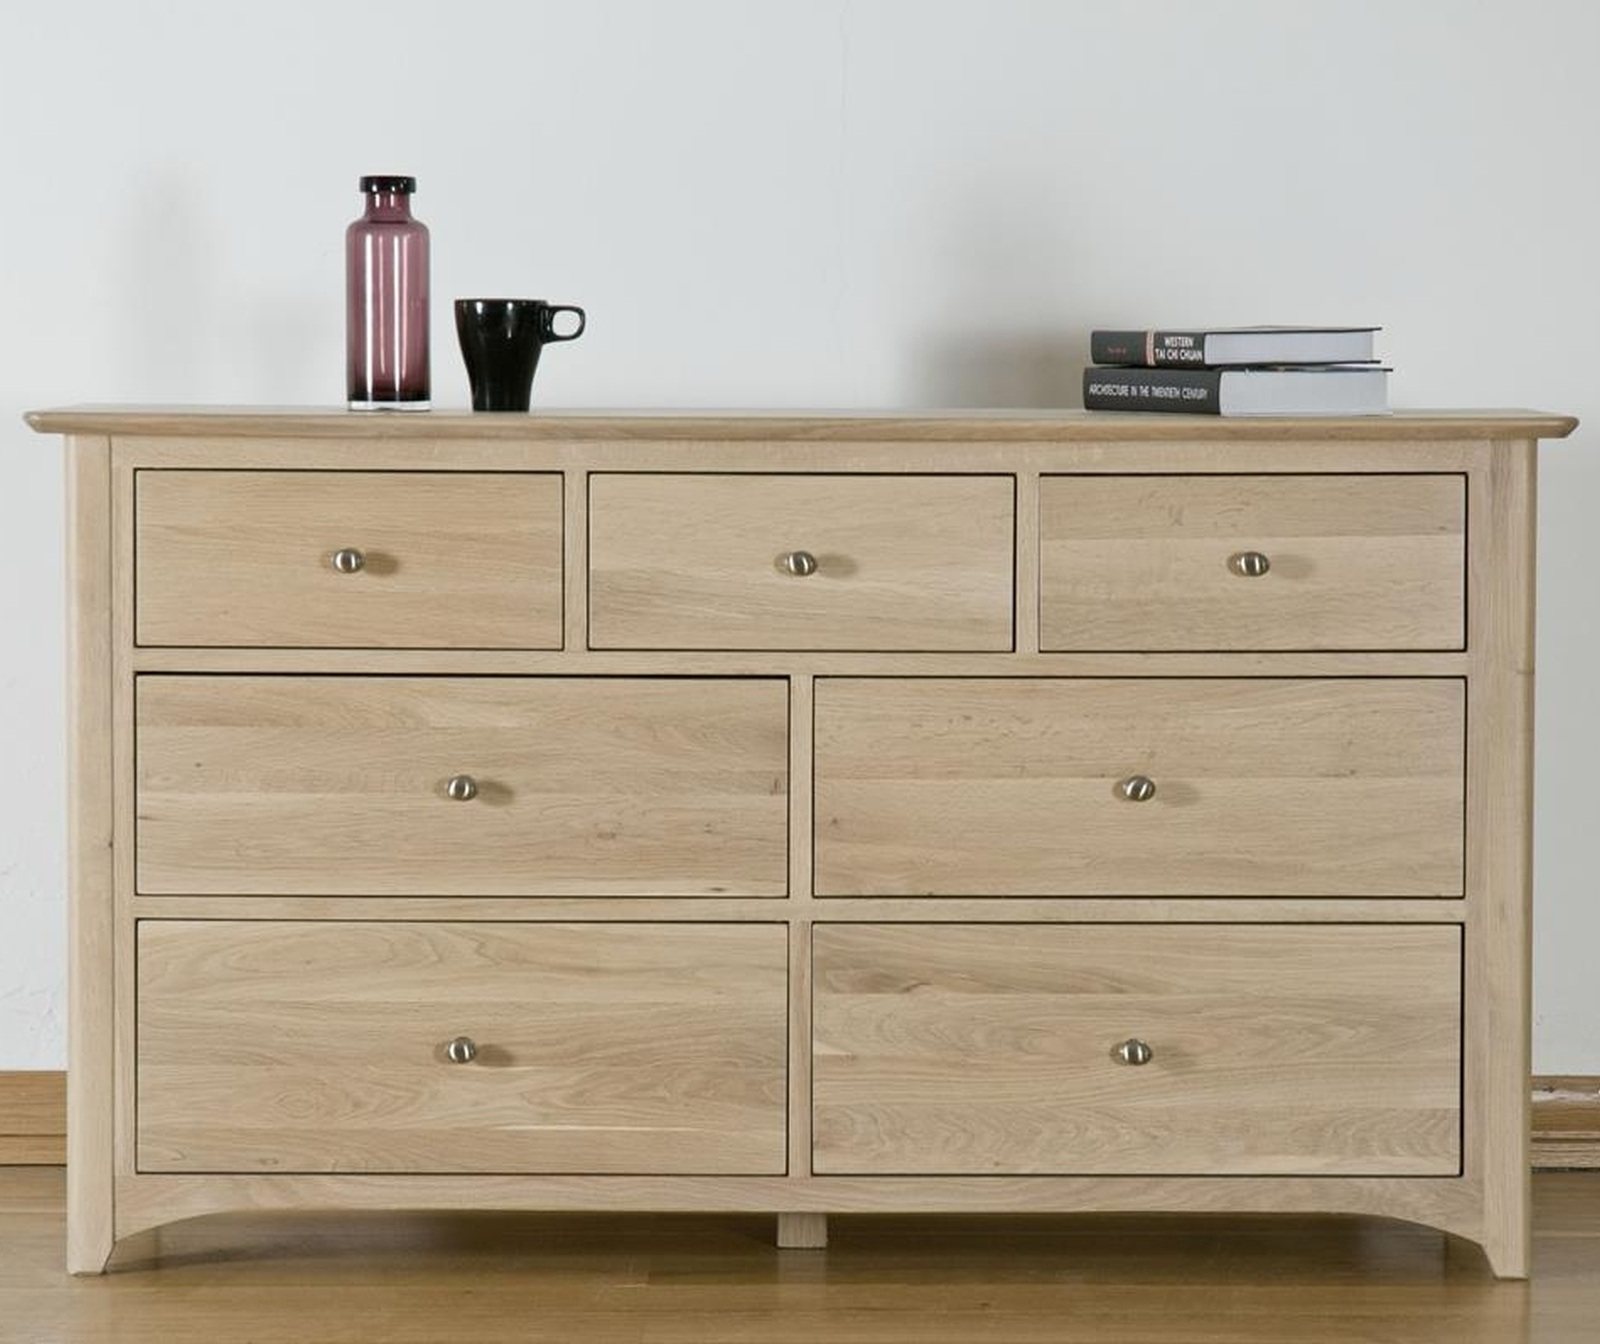 Kingswood solid oak bedroom furniture 3 over 4 wide chest for Solid oak bedroom furniture